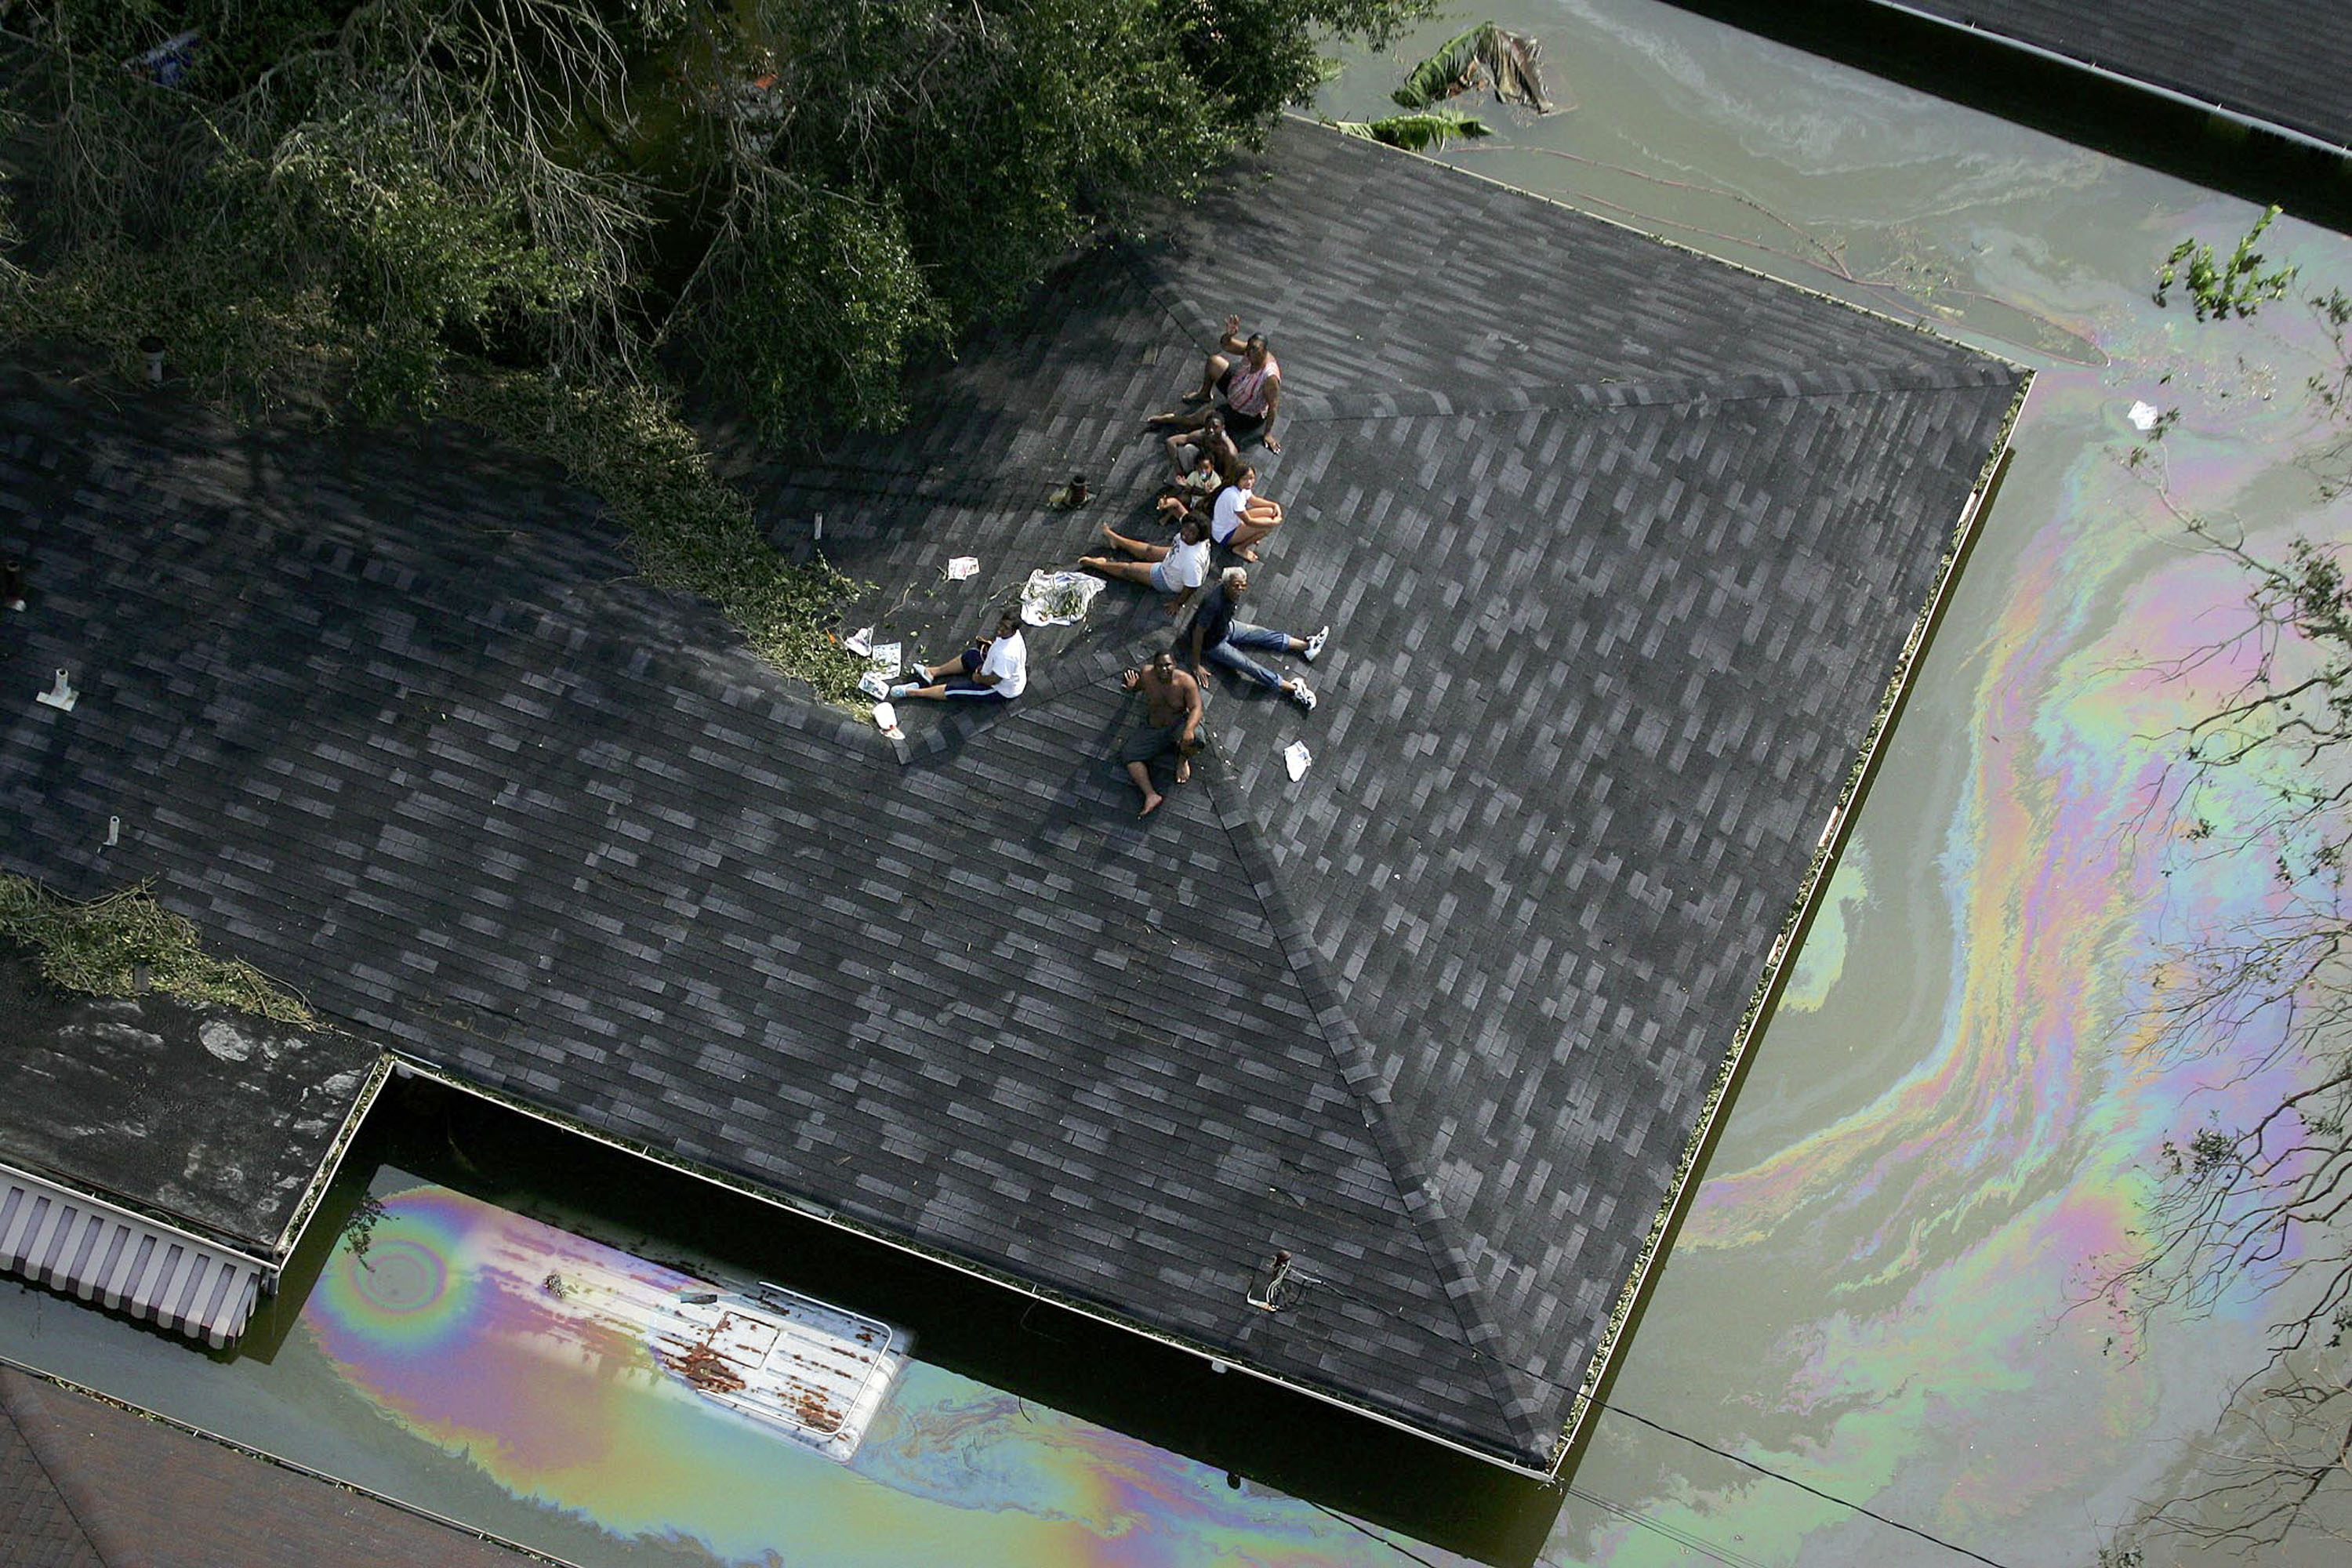 People are stranded on a roof due to flood waters from Hurricane Katrina 30 August 2005 in New Orleans, Louisiana. It is estimated that 80 percent of New Orleans is under flood waters as levees begin to break and leak around Lake Ponchartrain.   AFP PHOTO/POOL/Vincent Laforet (Photo credit should read POOL/AFP/Getty Images)